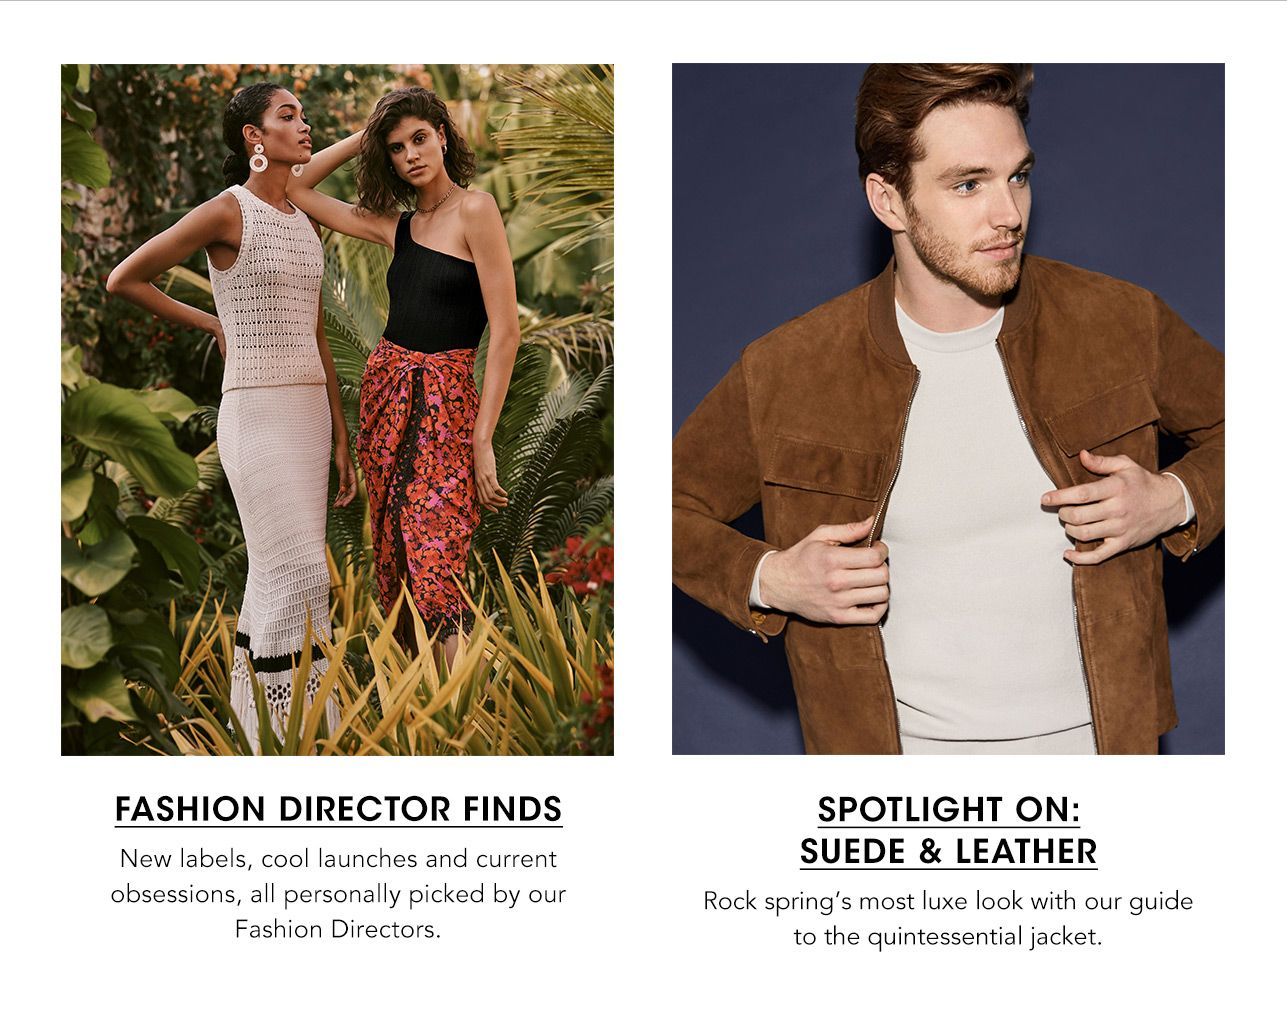 Fashion Direct Finds and Men's spotlight on suede and leather